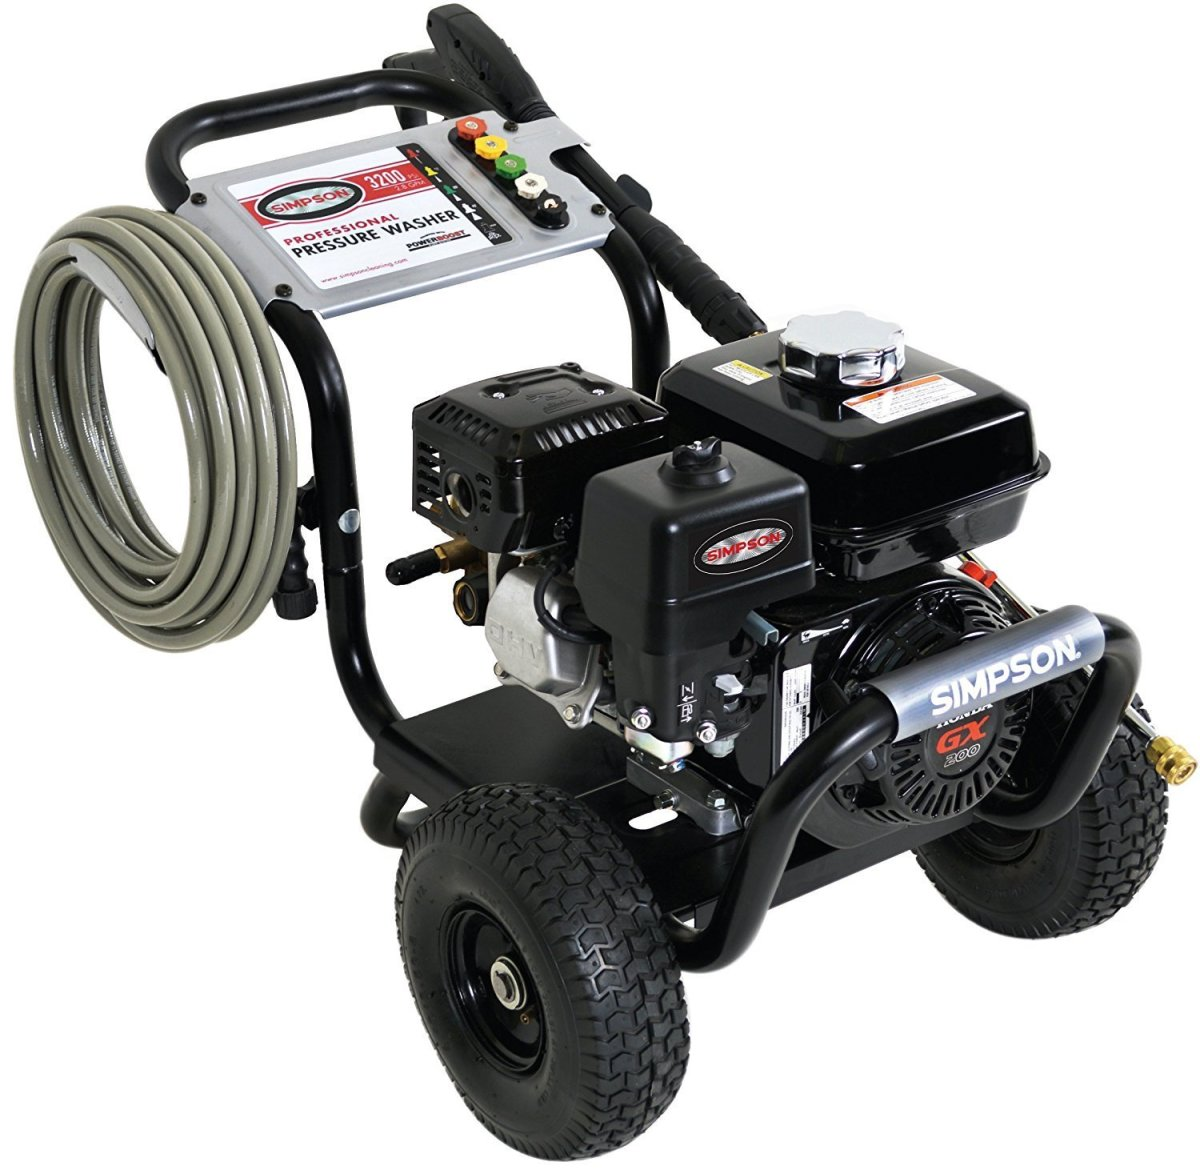 Simpson PS3228-S Pressure Washer - Pros and Cons From an Owner